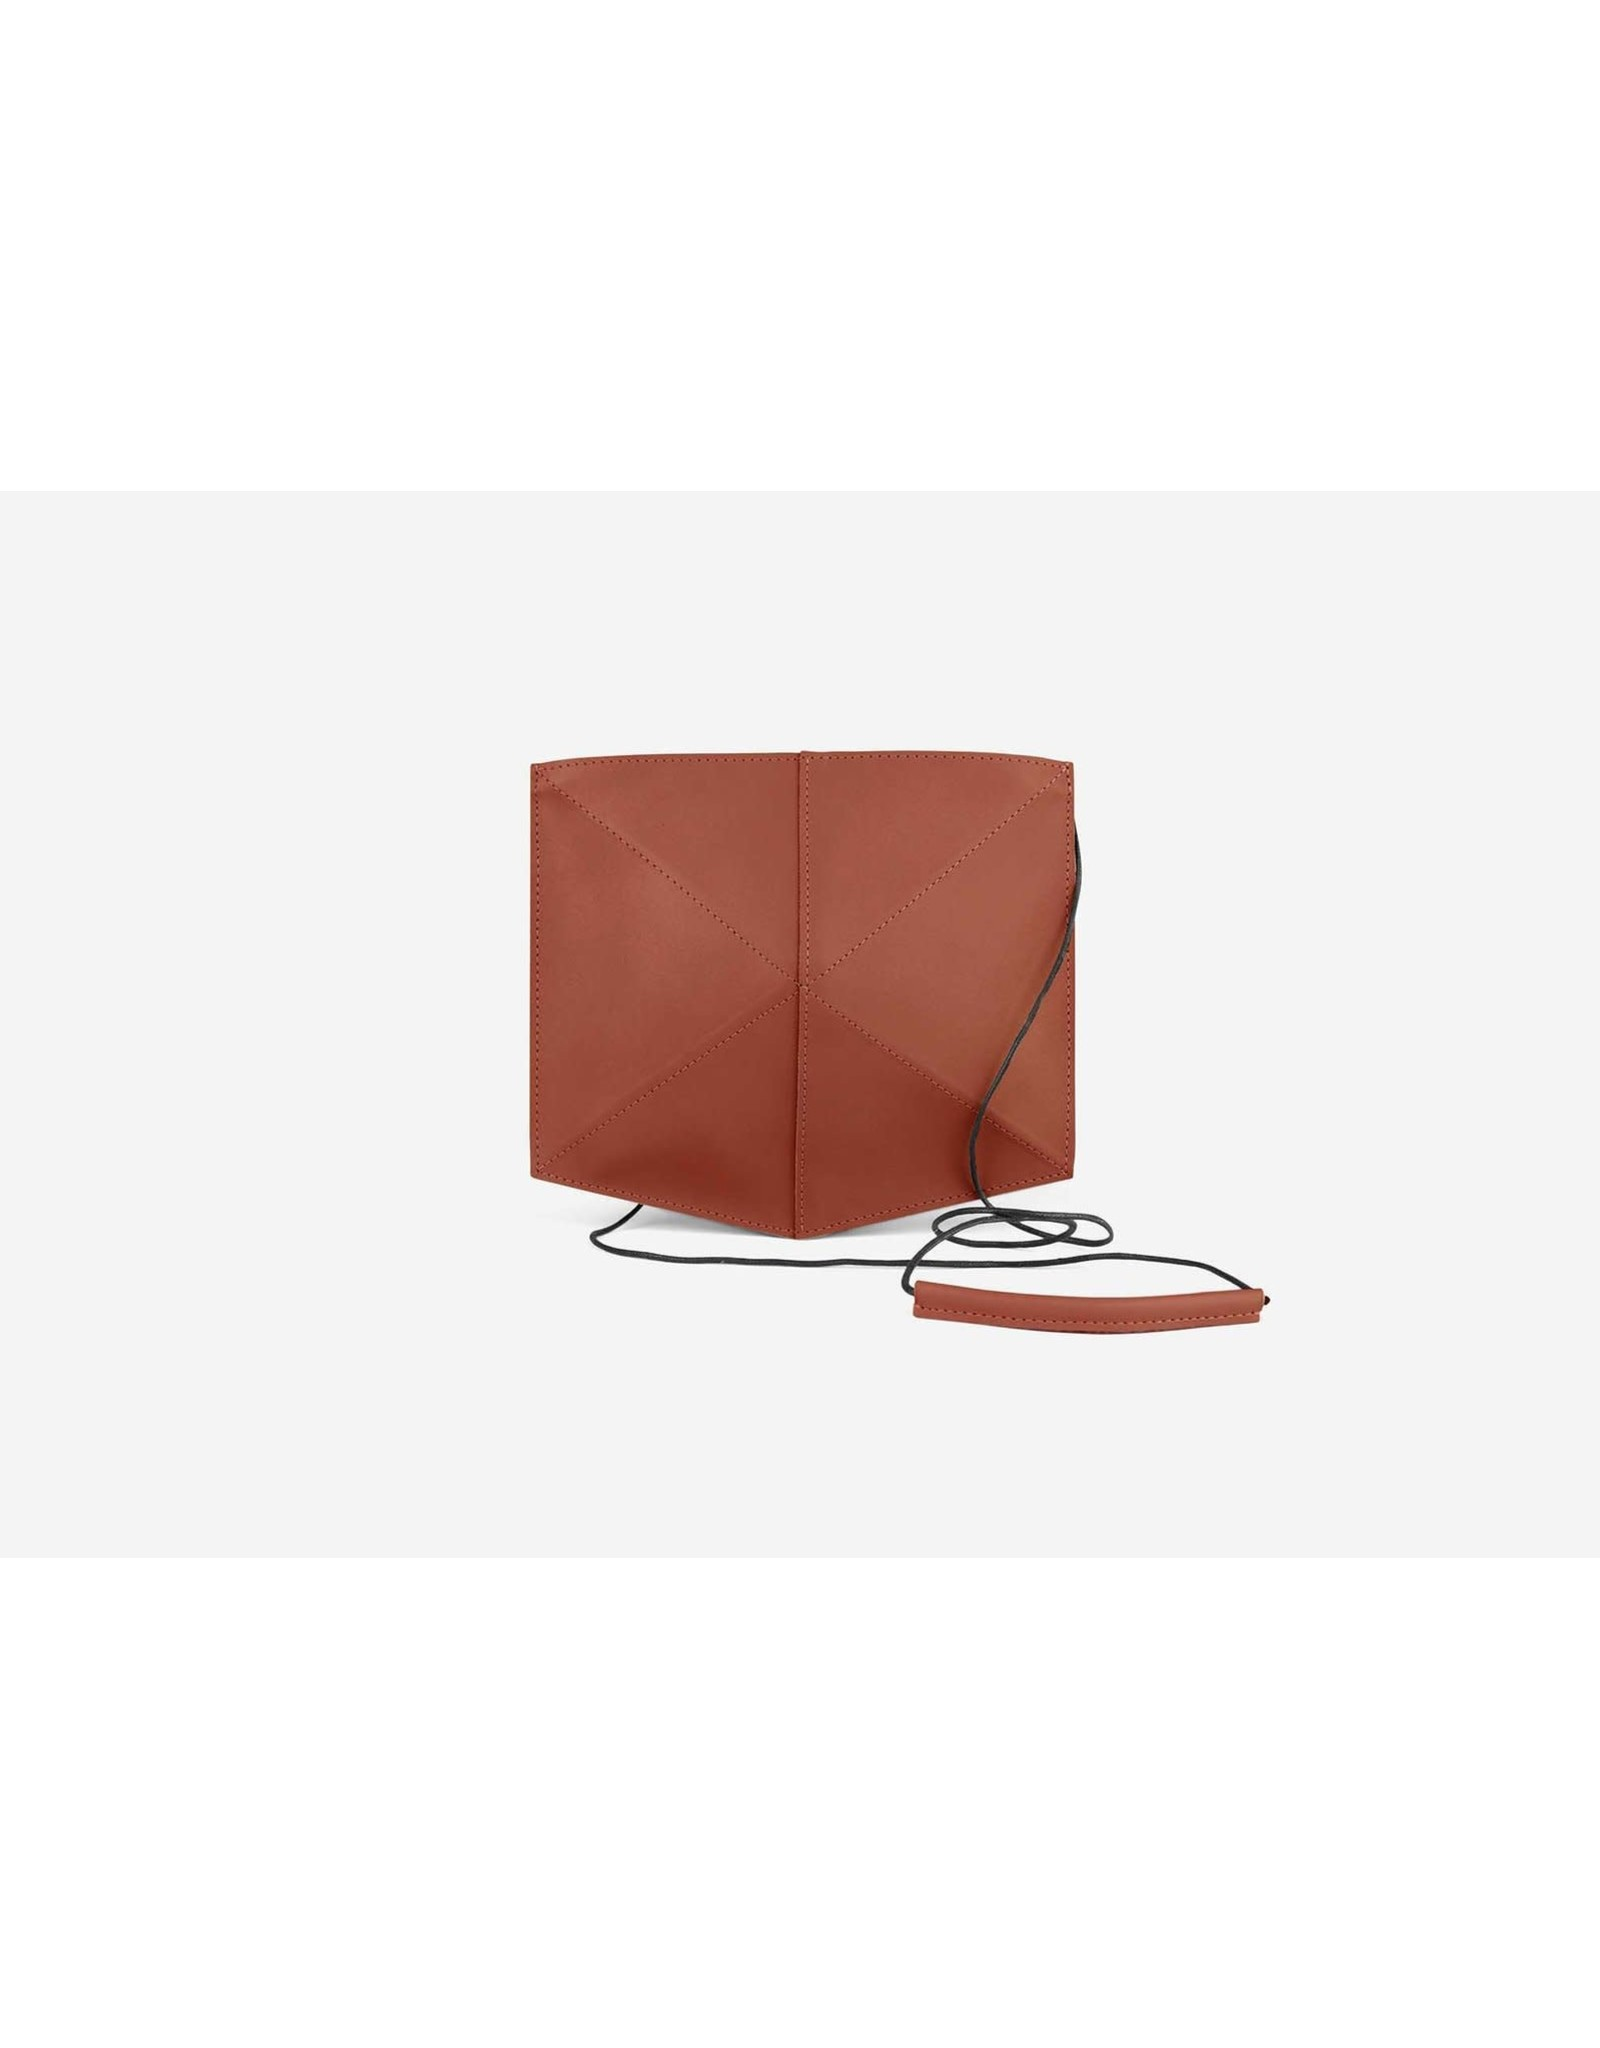 Zand-erover Shoulderbag | Mini Fold | Terracotta